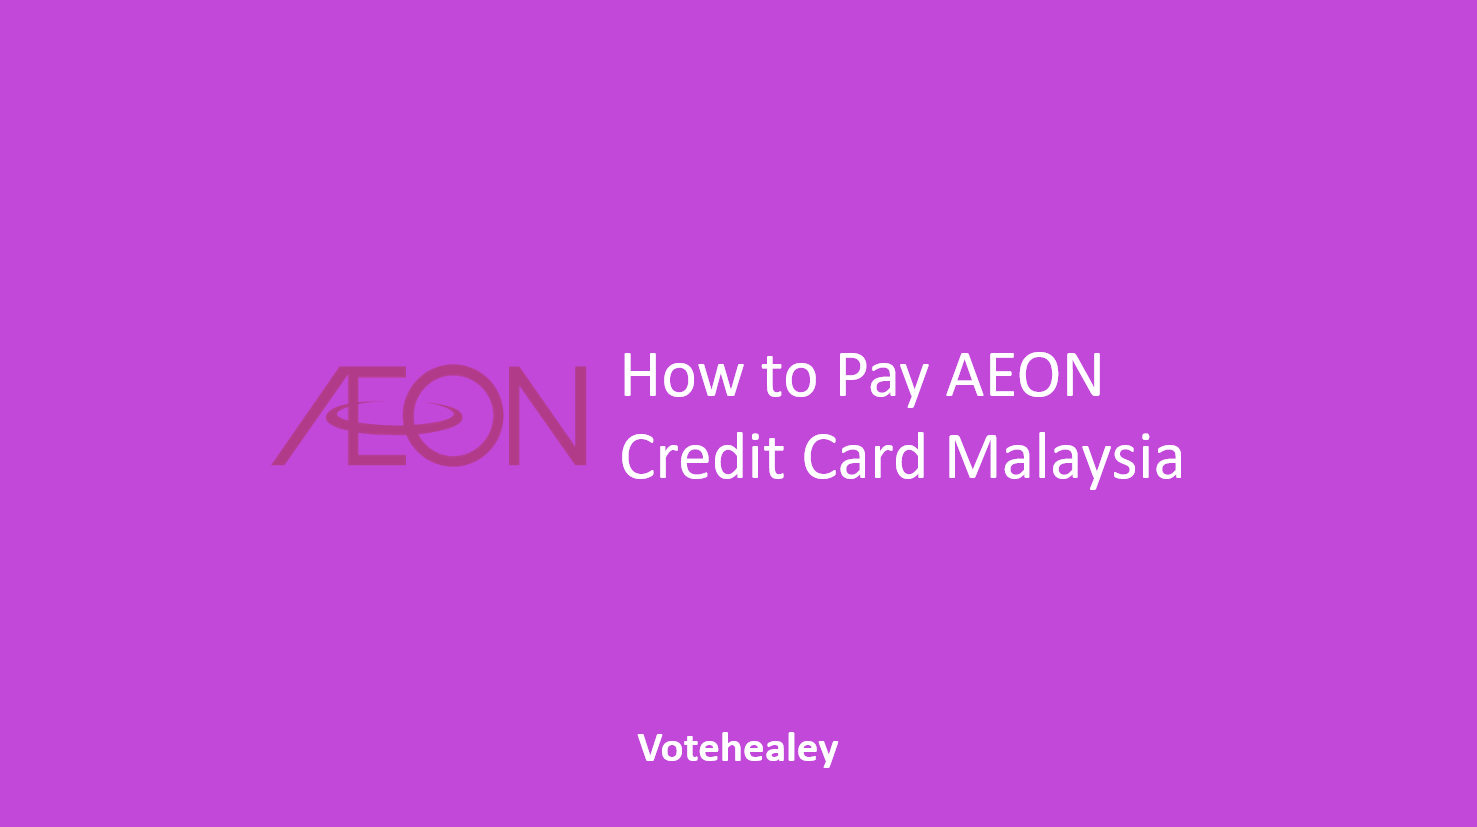 How to Pay AEON Credit Card Malaysia